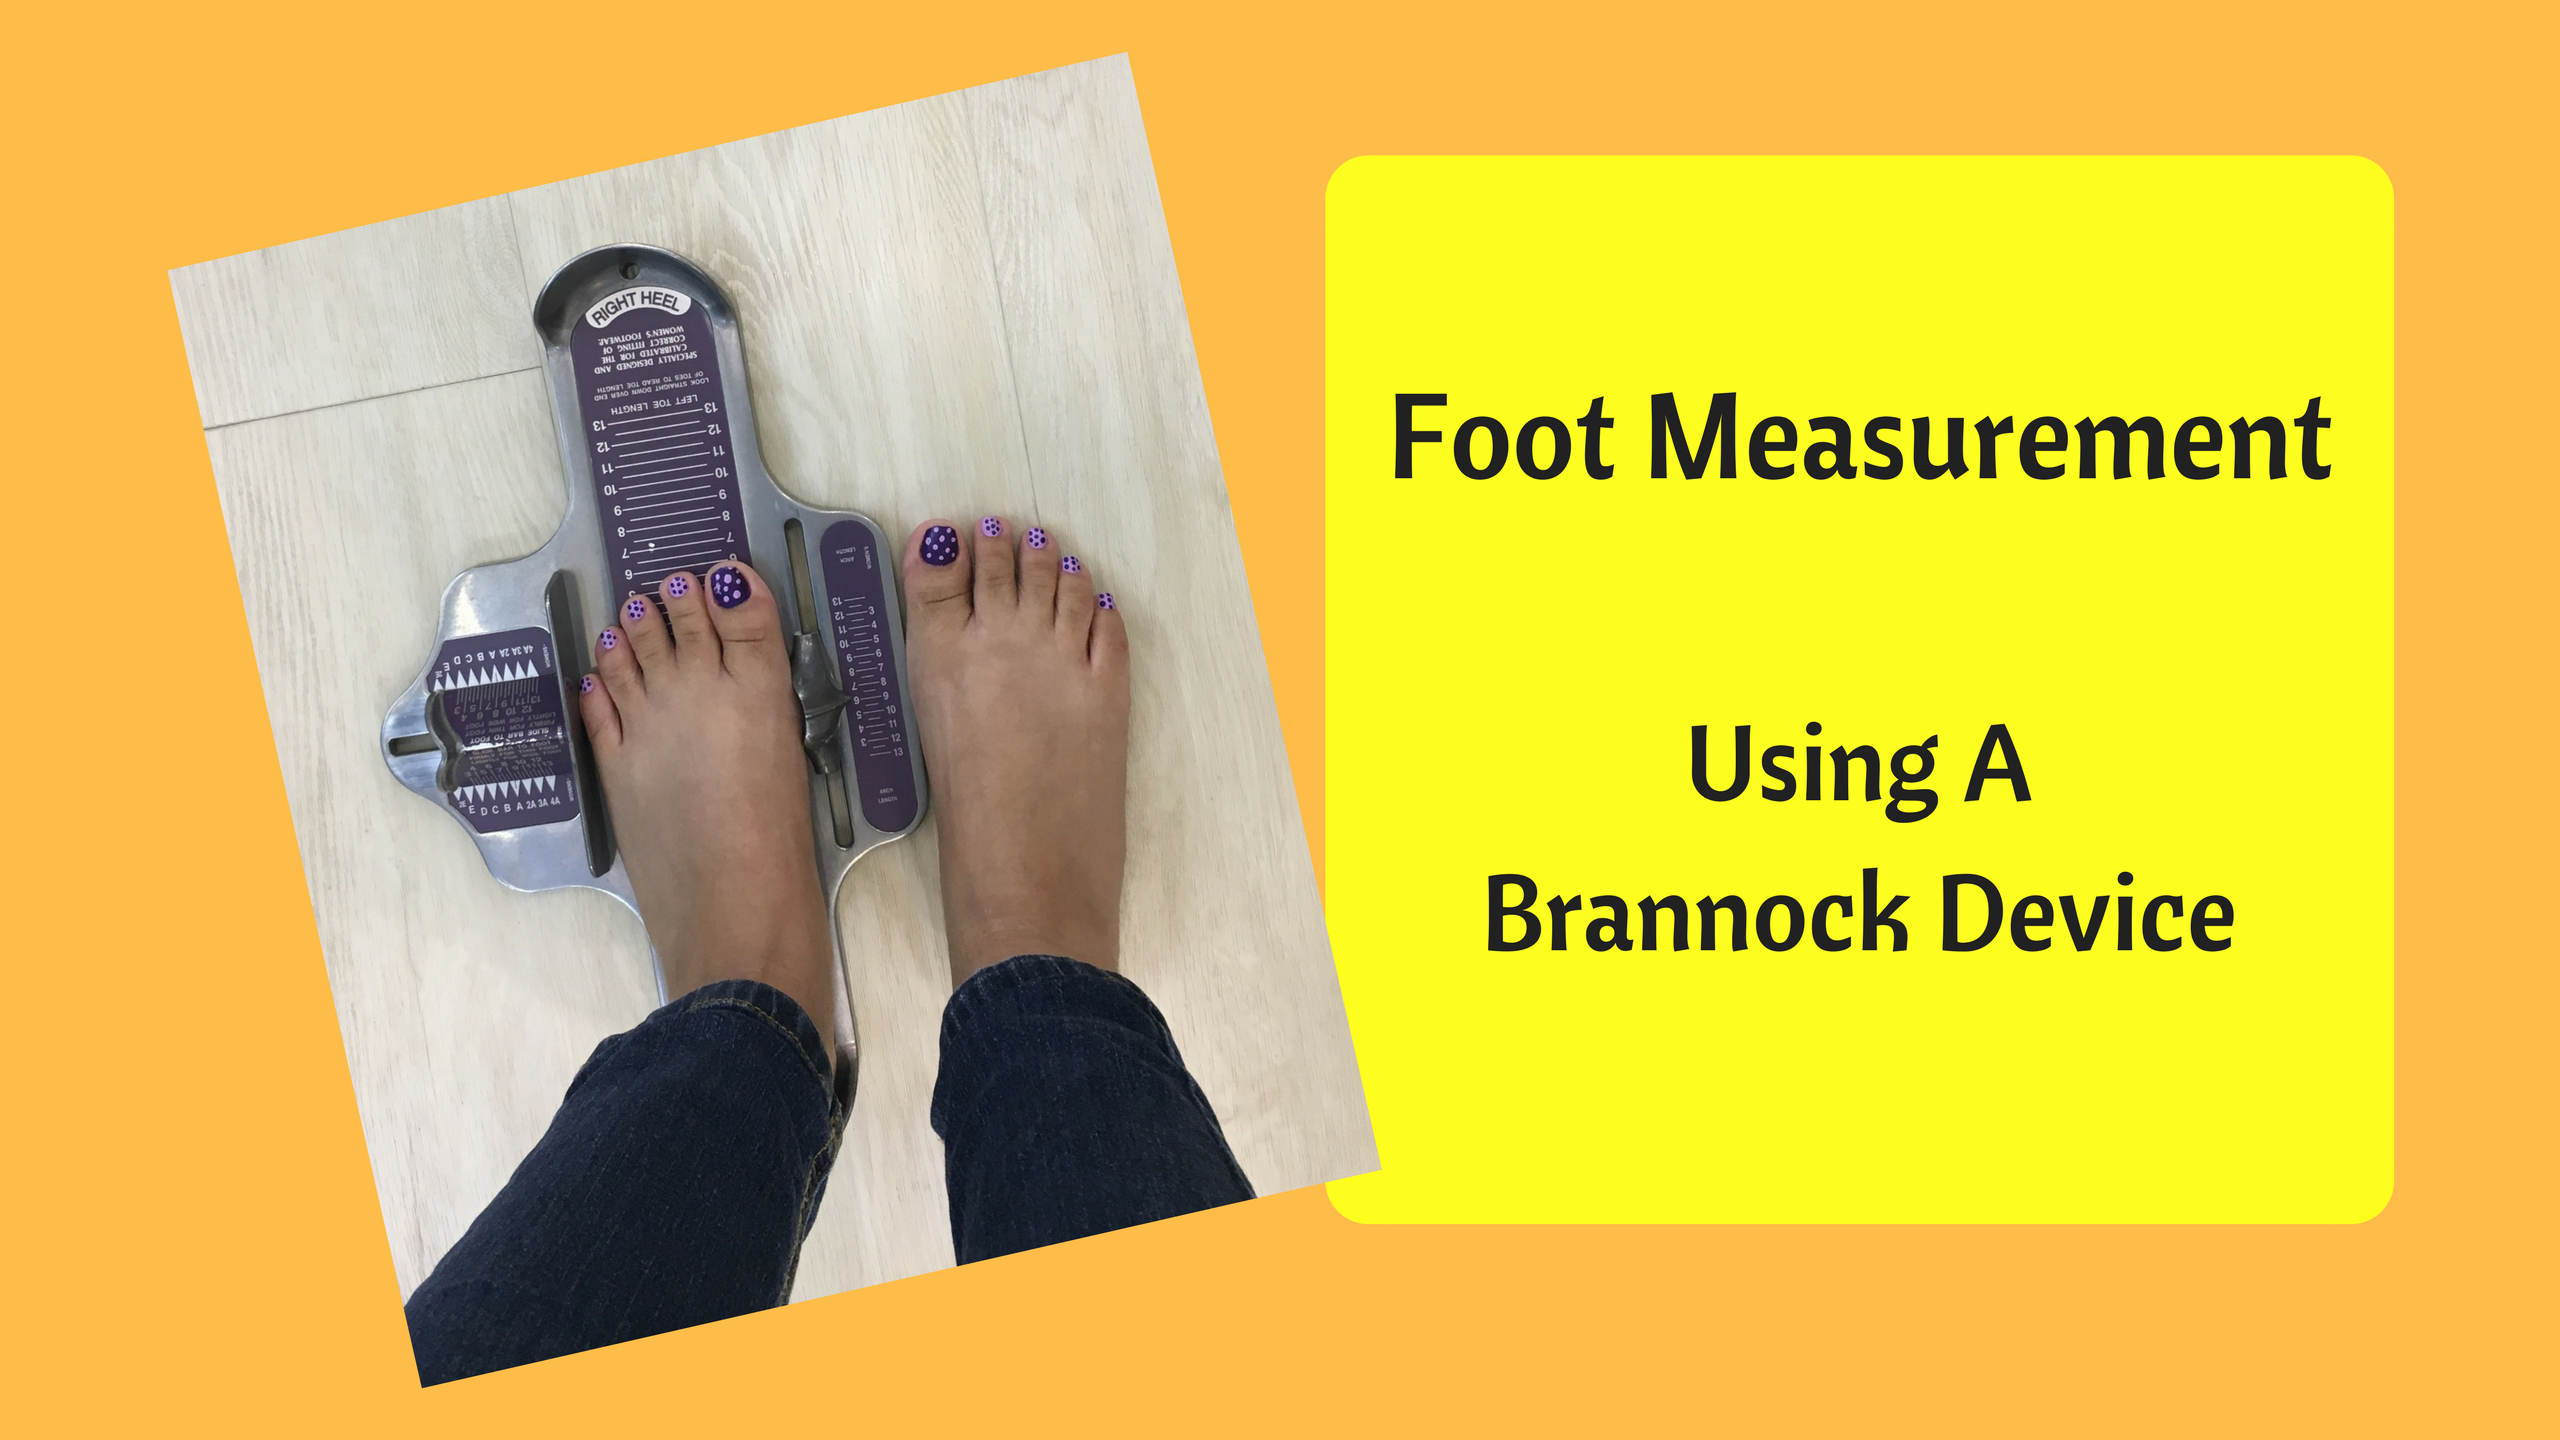 Name Of The Foot Measuring Device : Foot measurement singapore avoid shoes that don t fit